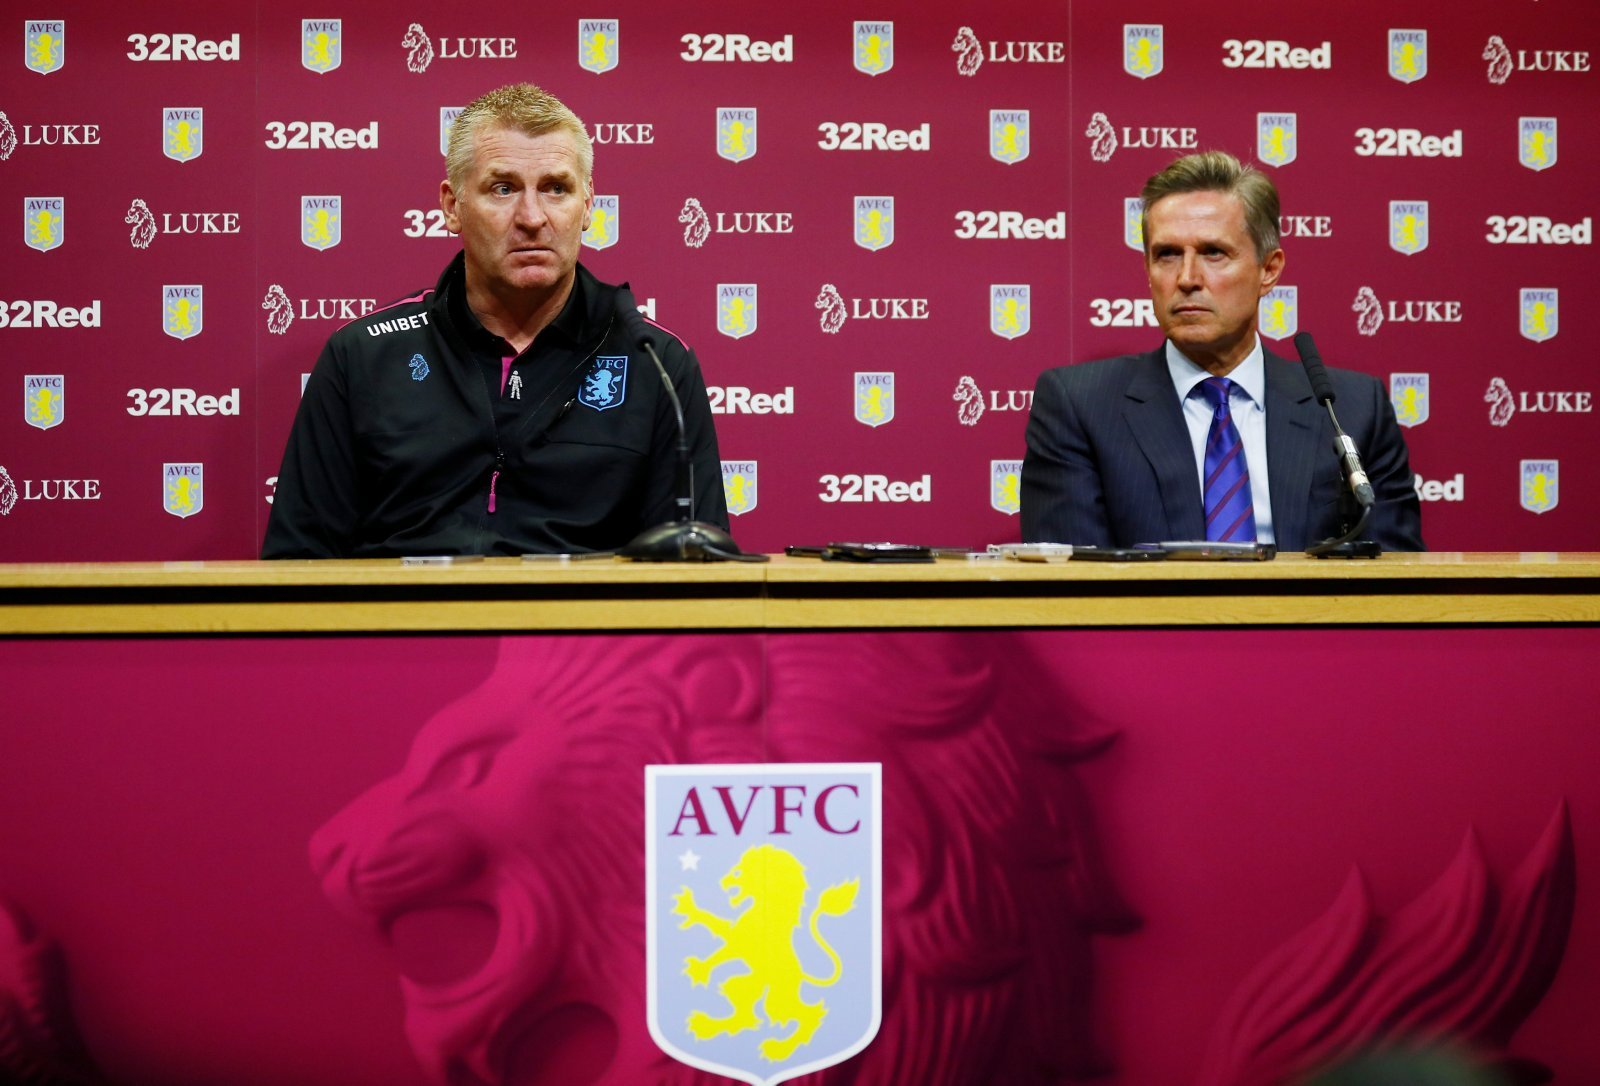 Aston Villa fans on Twitter have hope of success after recent surge